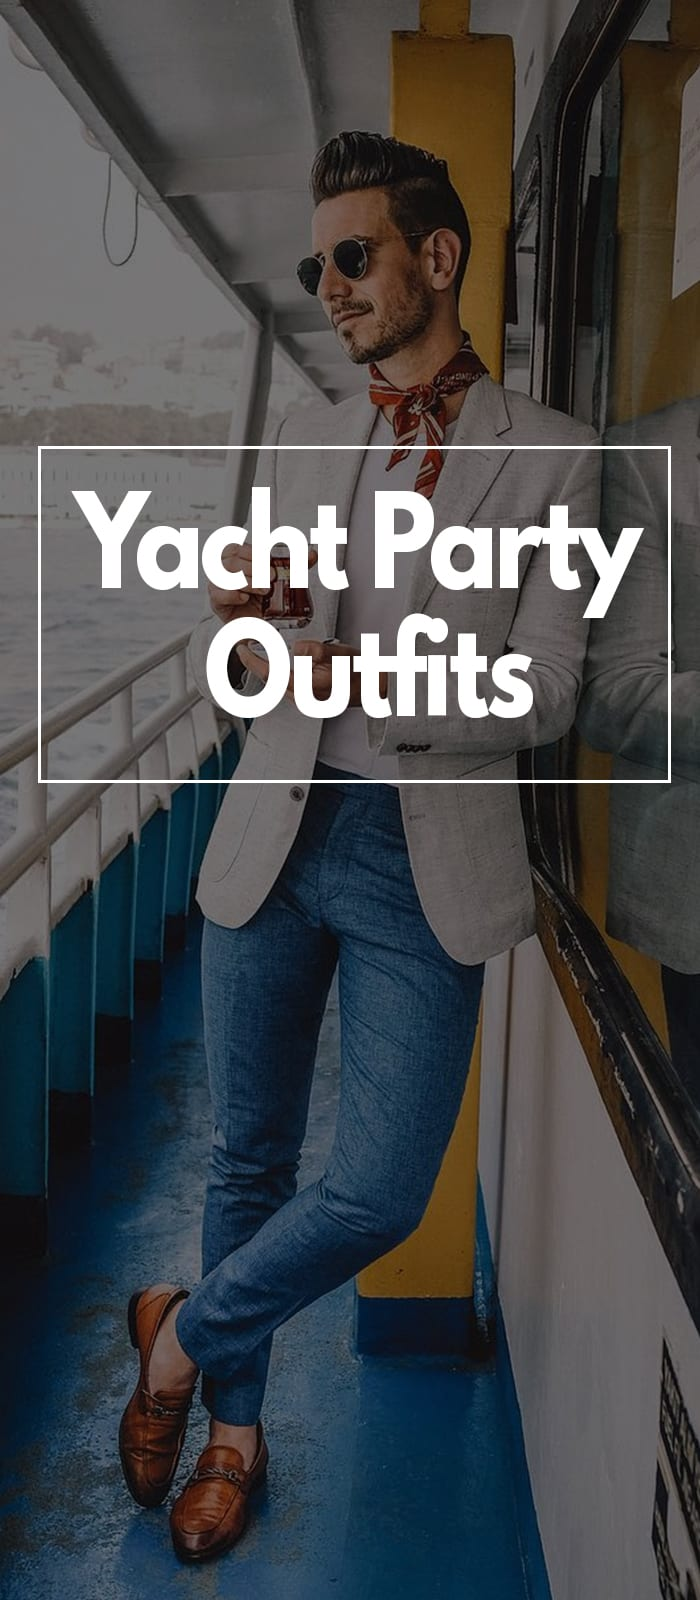 Linen jacket blue jeans white t-shirt outfit for men for yacht party